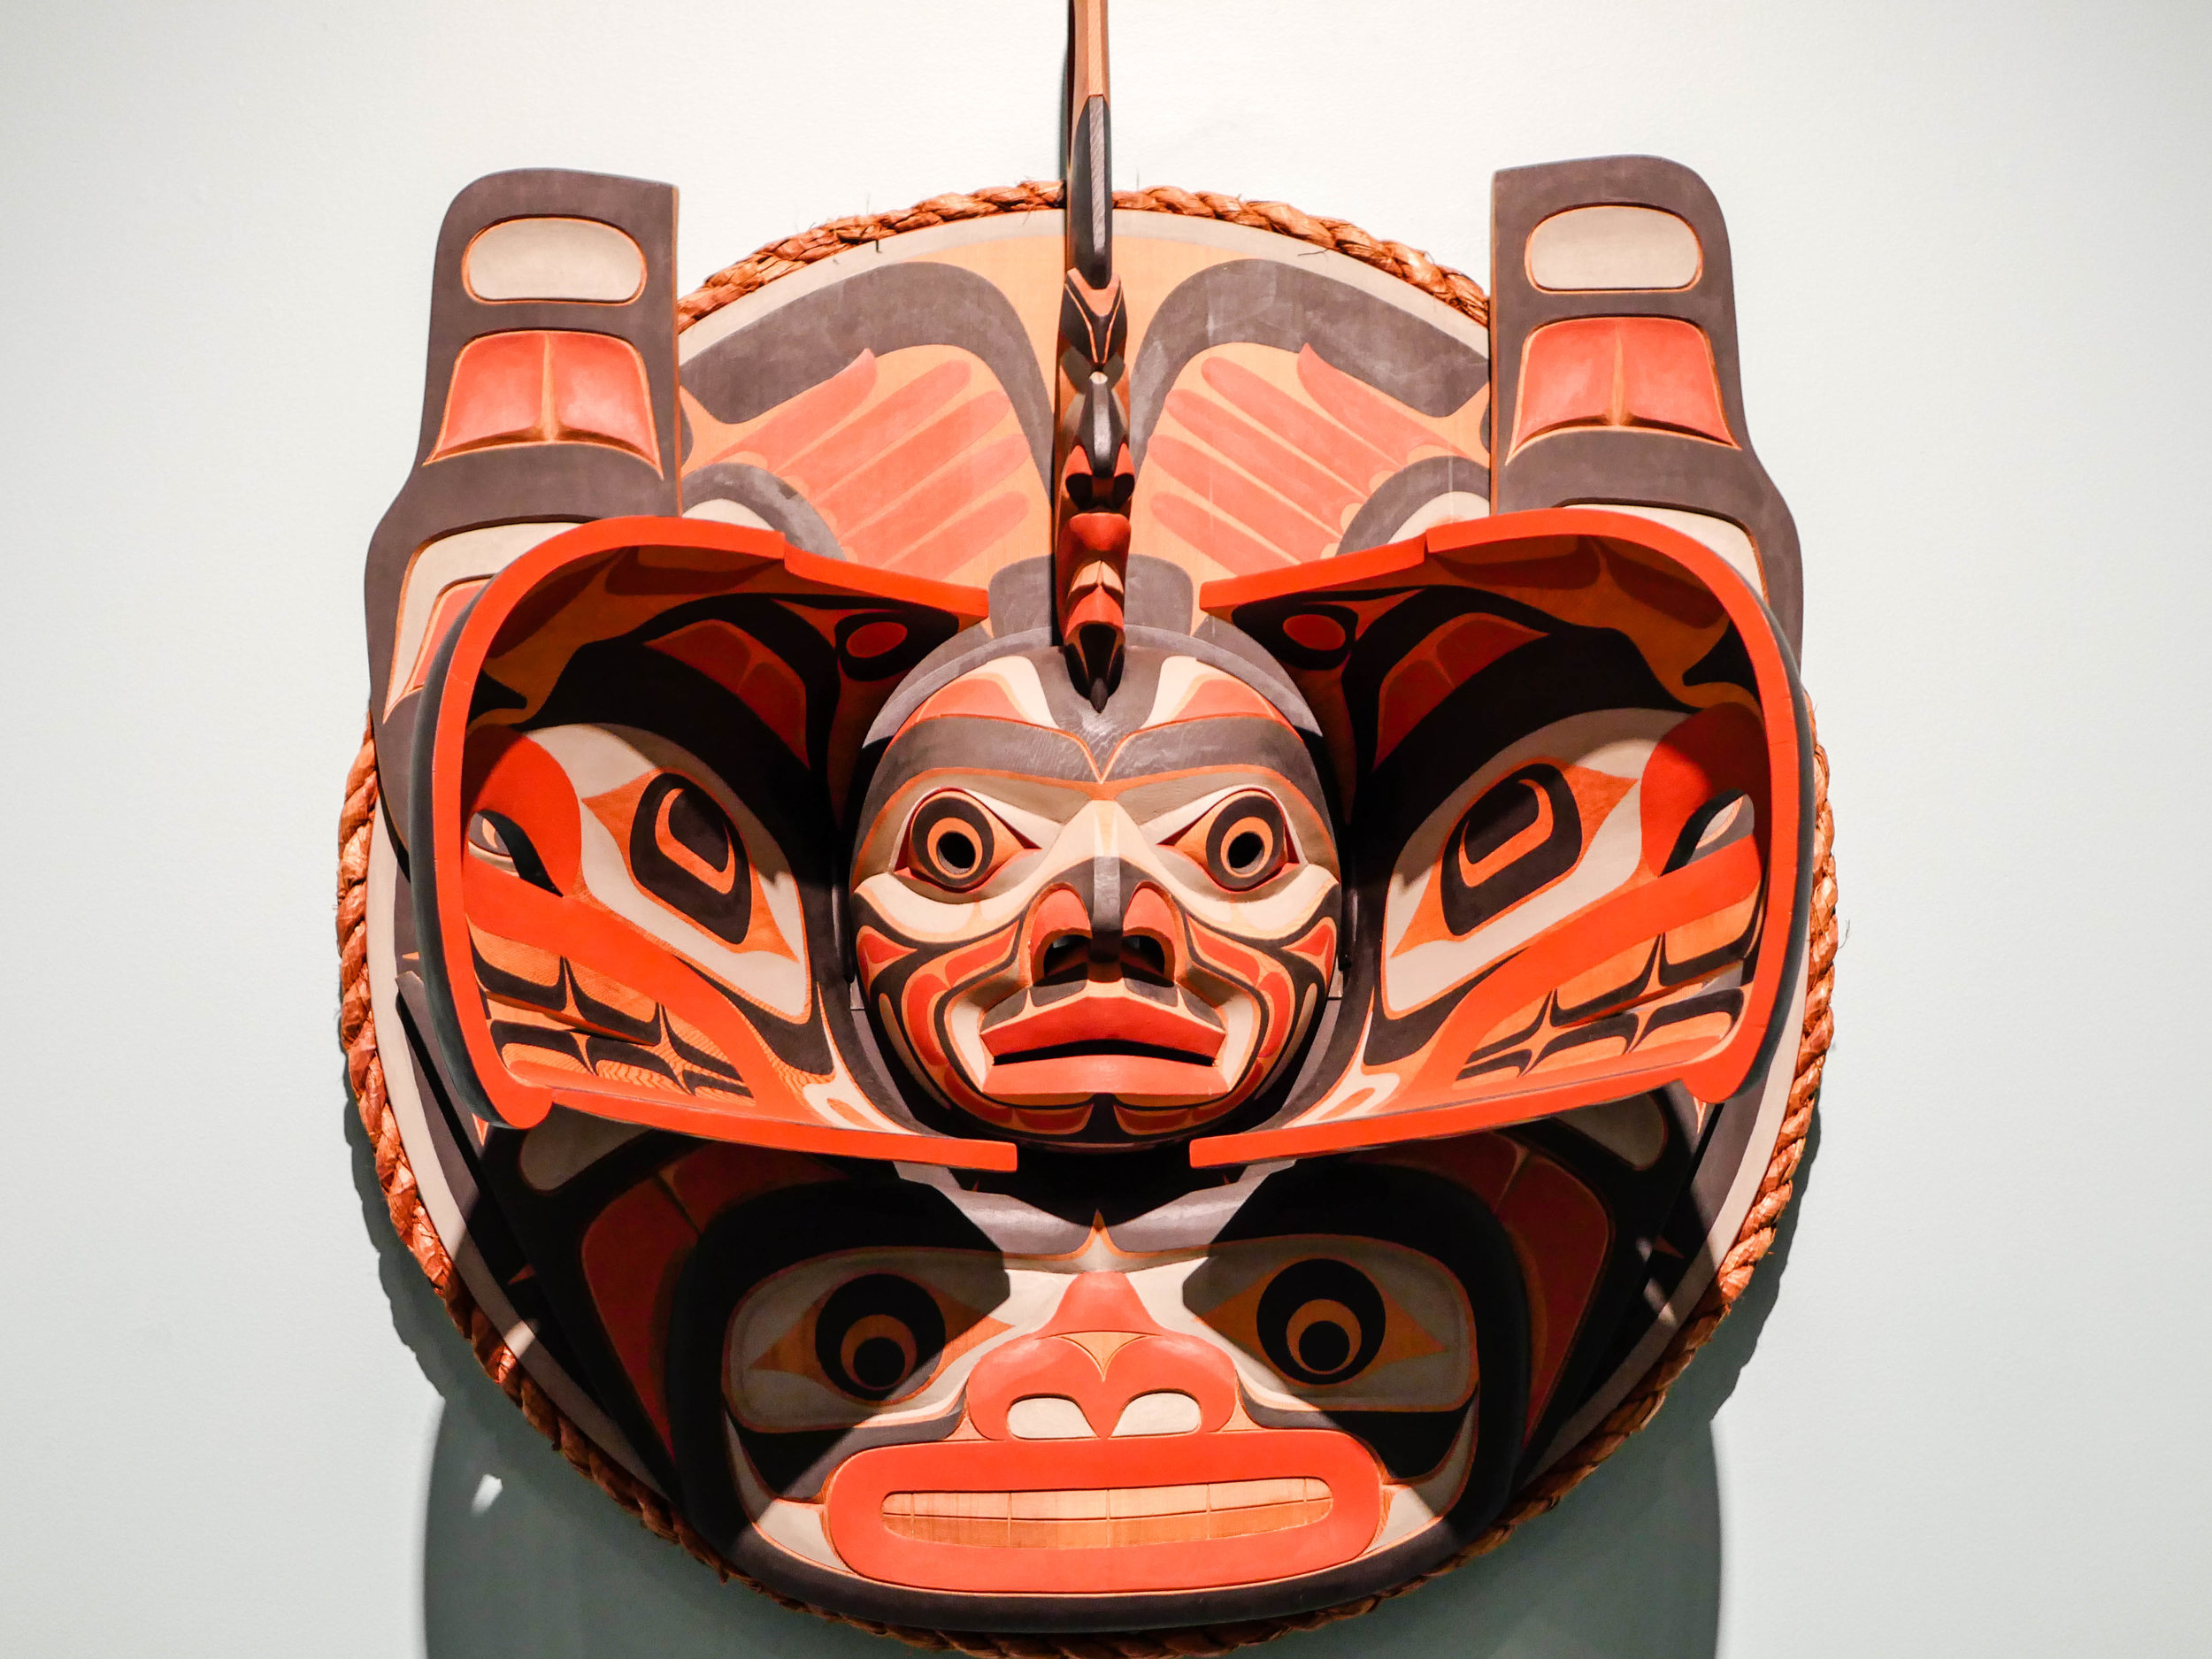 This mask opened up when you walked past it. Again, should have written down the name of the artist.